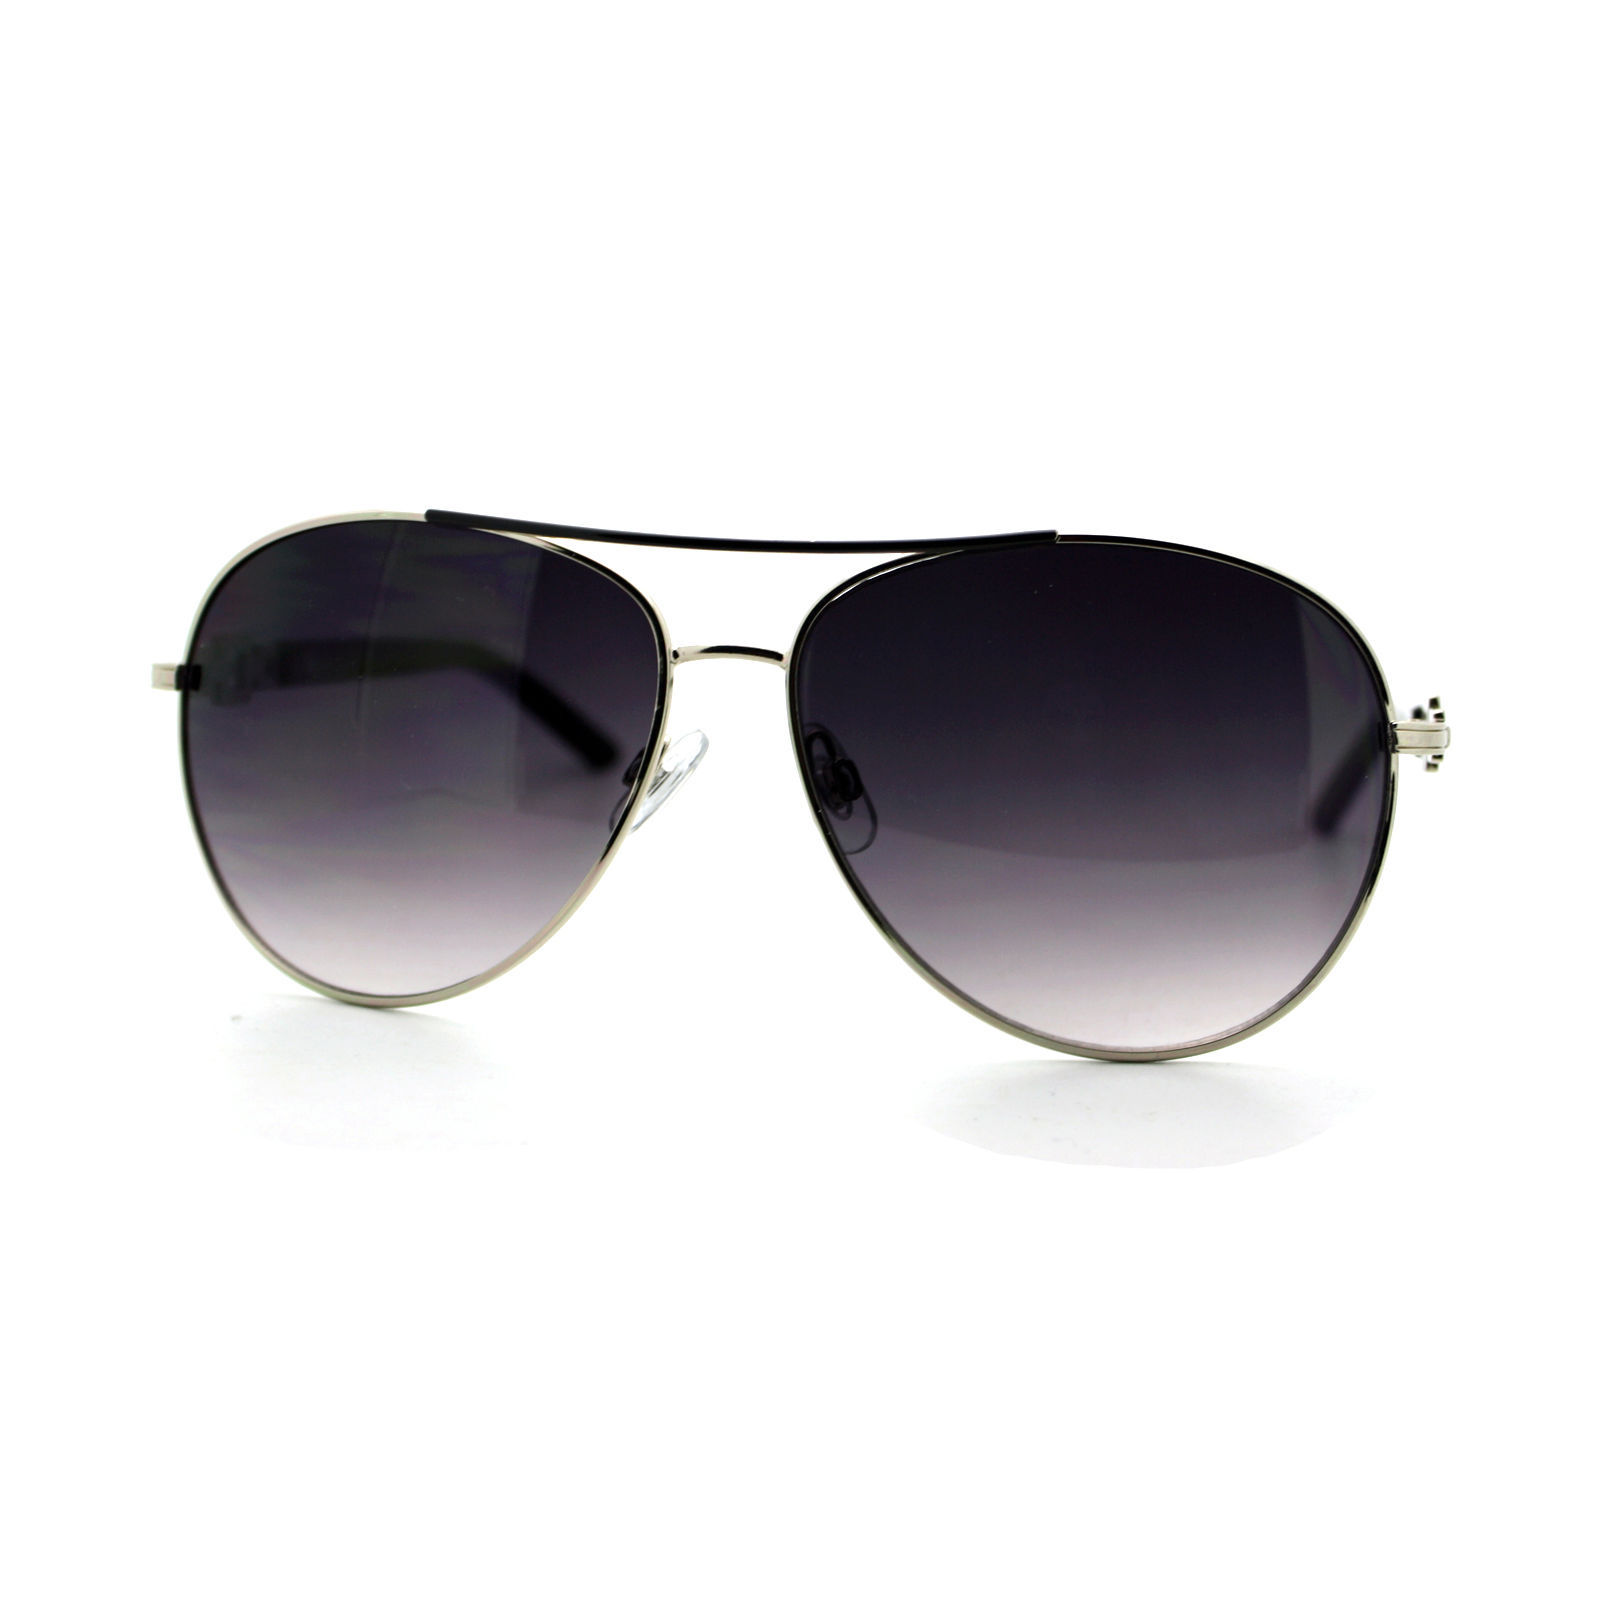 Women's Aviator Sunglasses Designer Fashion Round Aviators